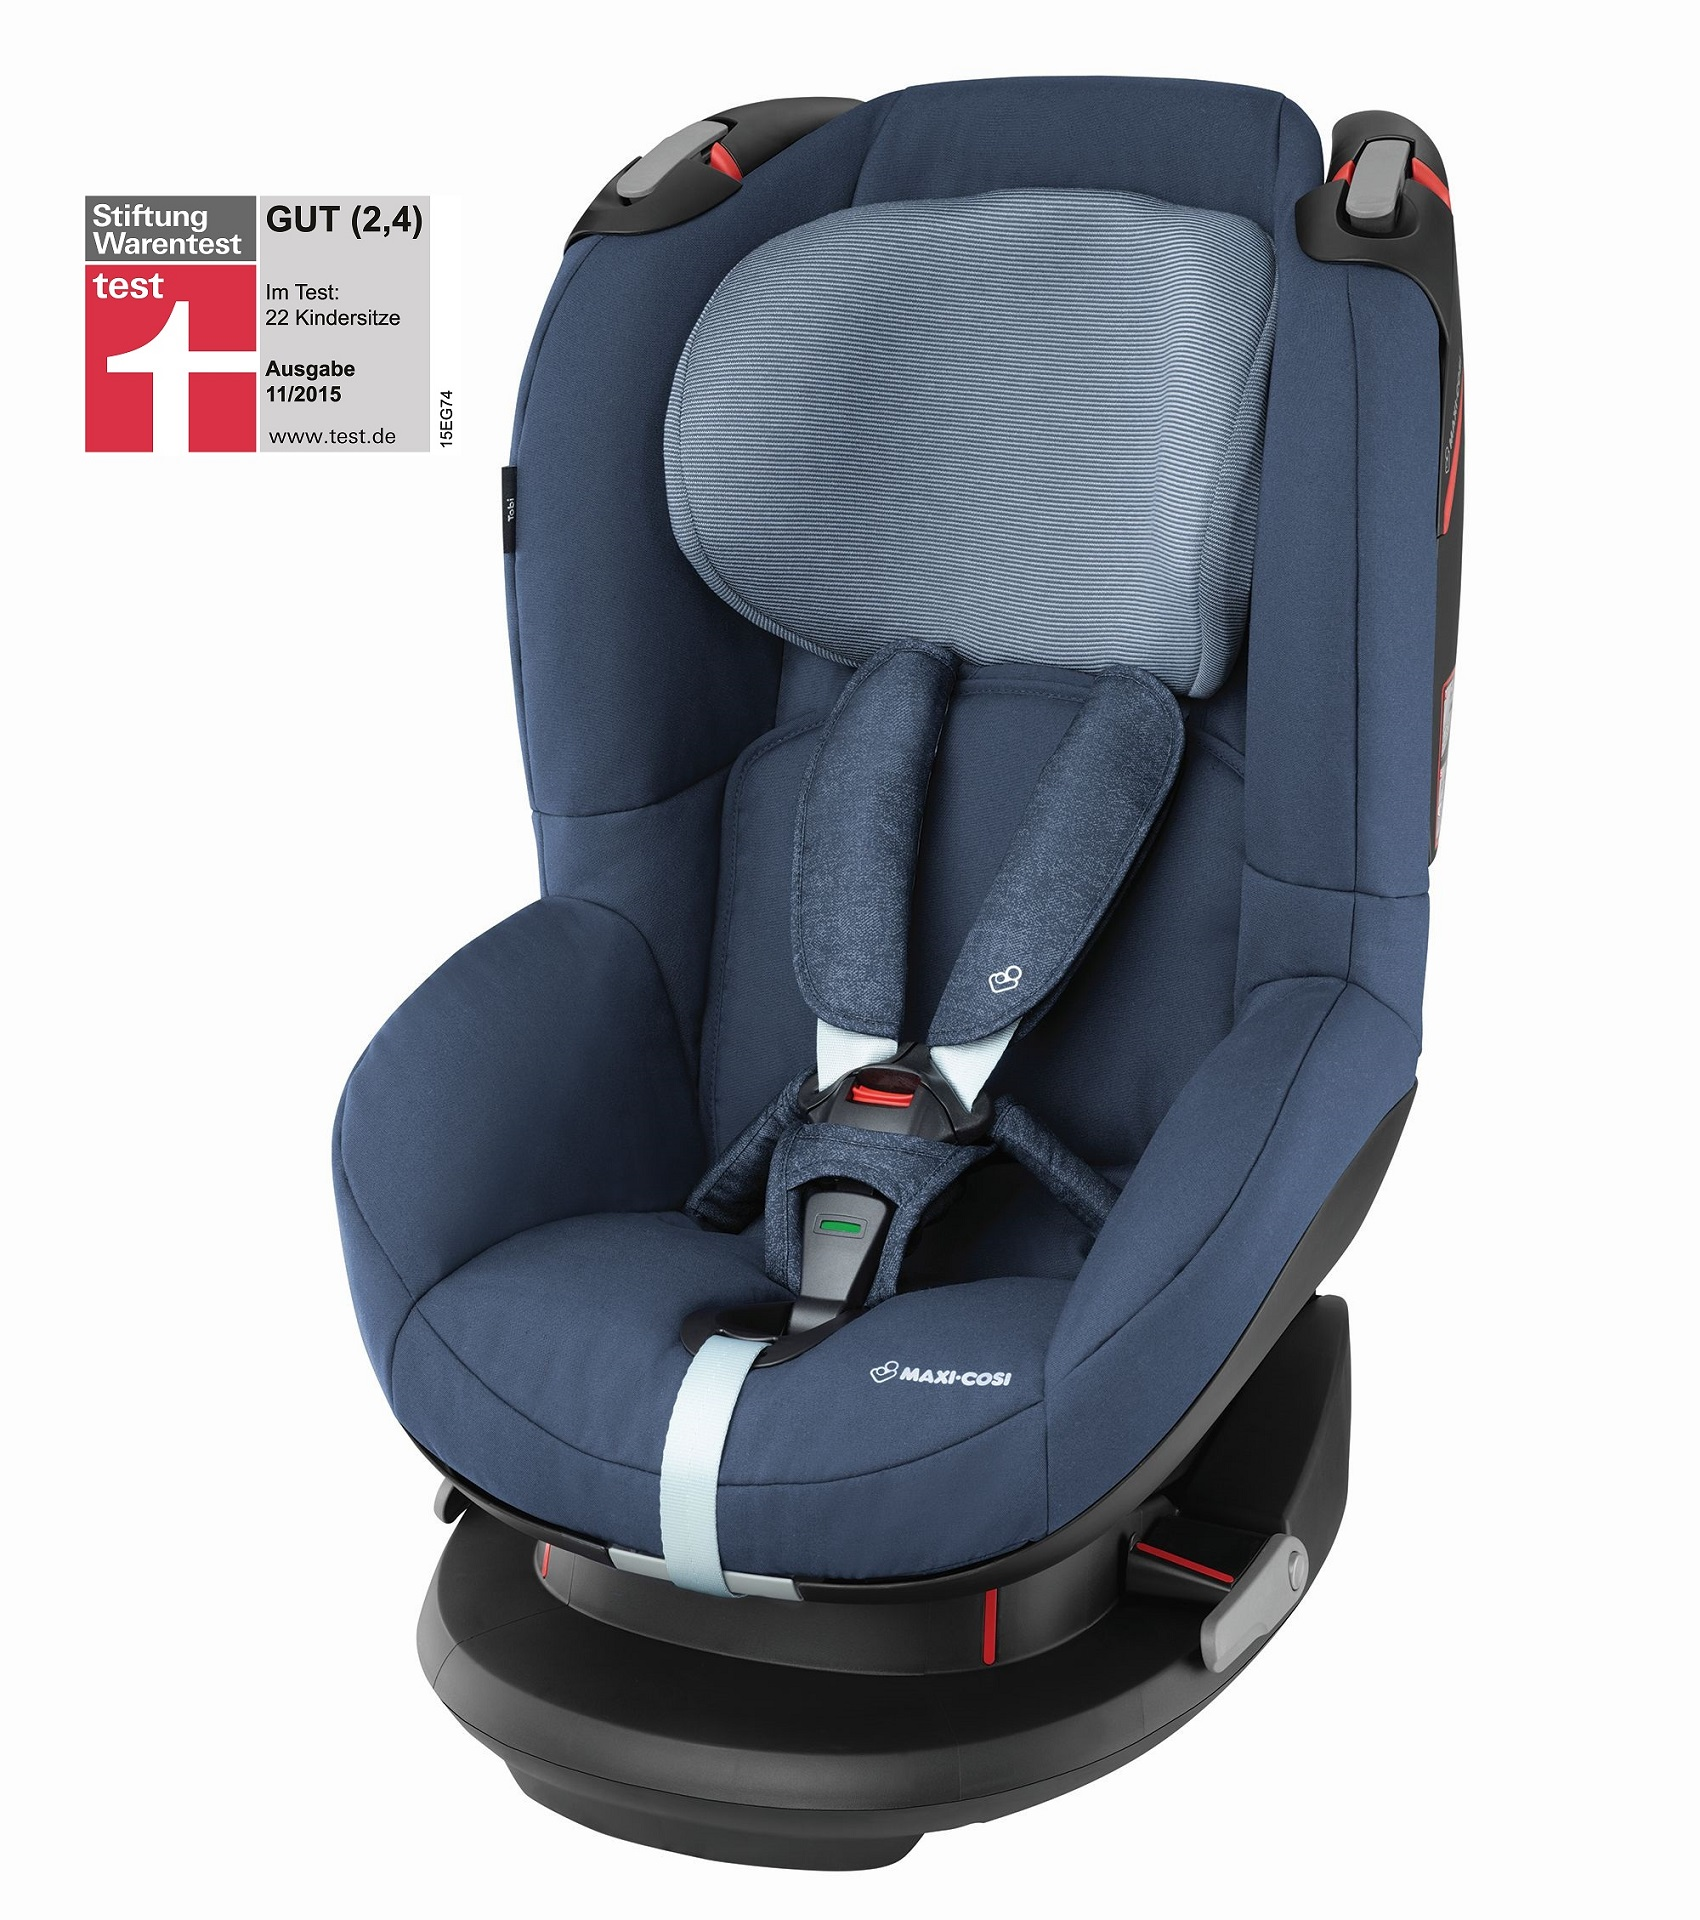 maxi cosi child car seat tobi 2018 nomad blue buy at kidsroom car seats. Black Bedroom Furniture Sets. Home Design Ideas